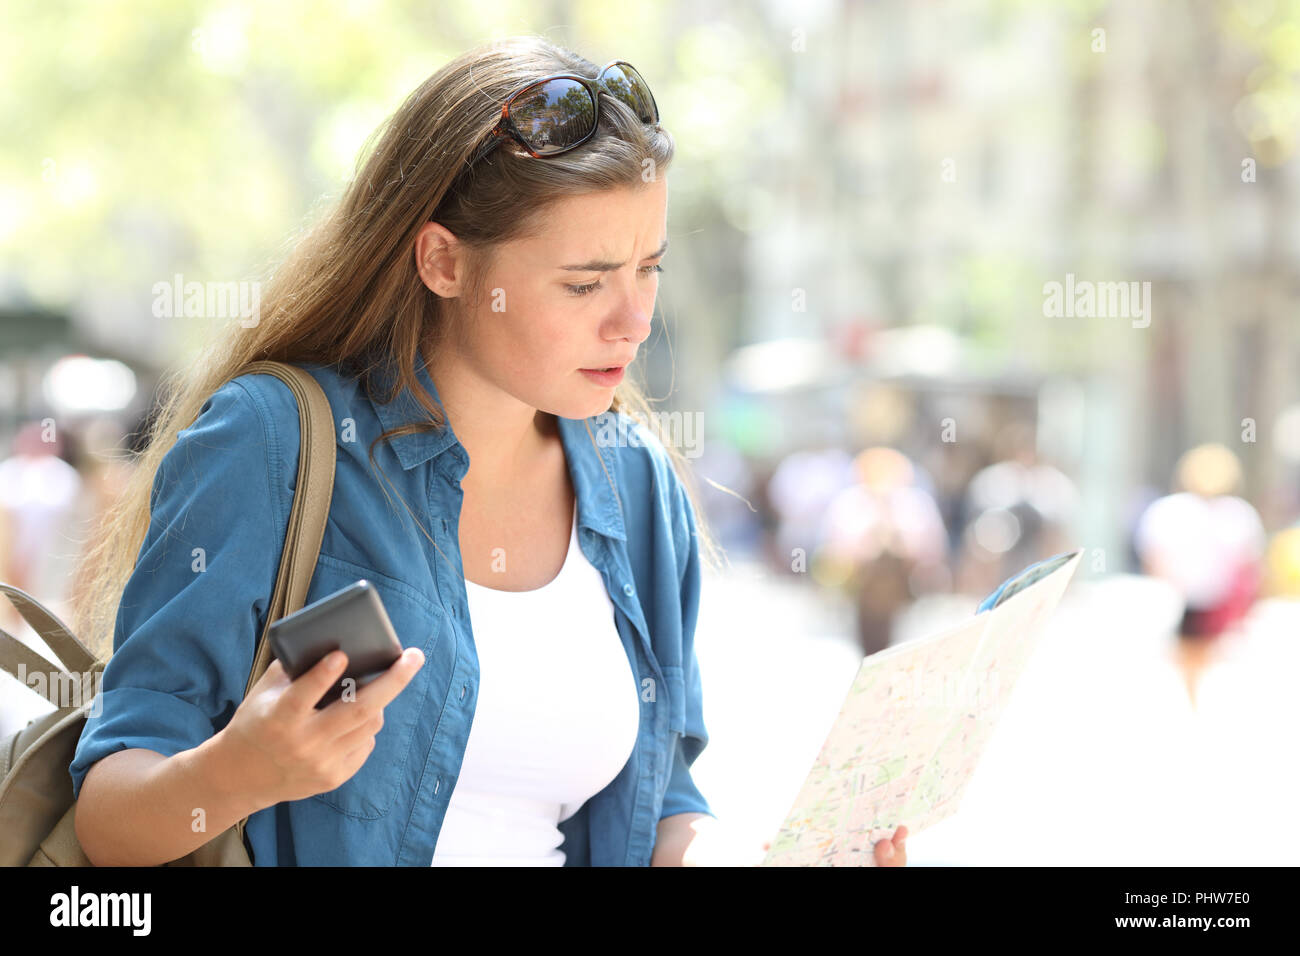 Lost tourist searching direction in a map and a phone in the street - Stock Image